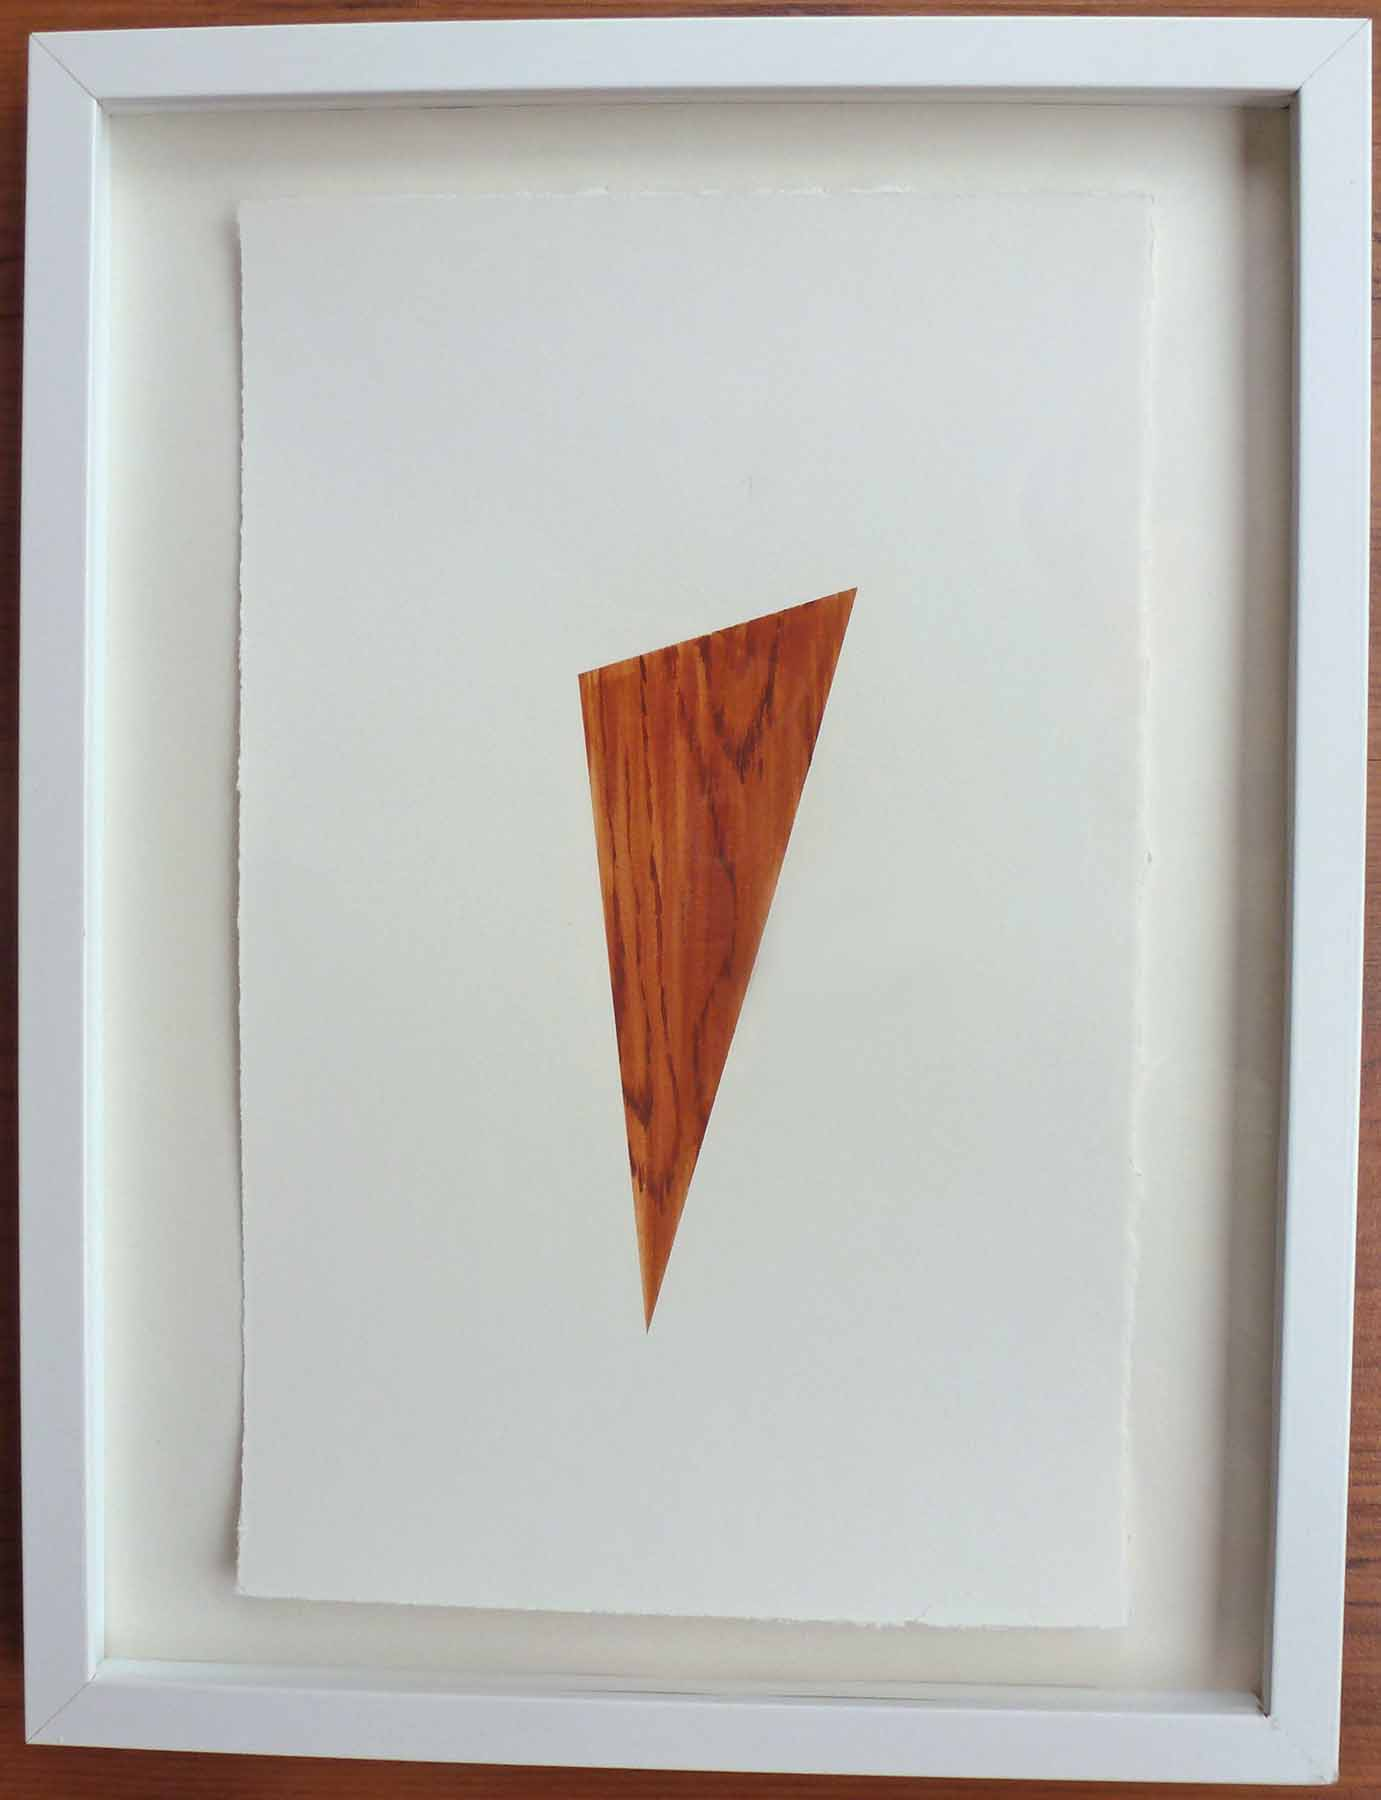 "Teak #3 , 2013, acrylic on paper, 12.5"" x 16.5"" (framed)"